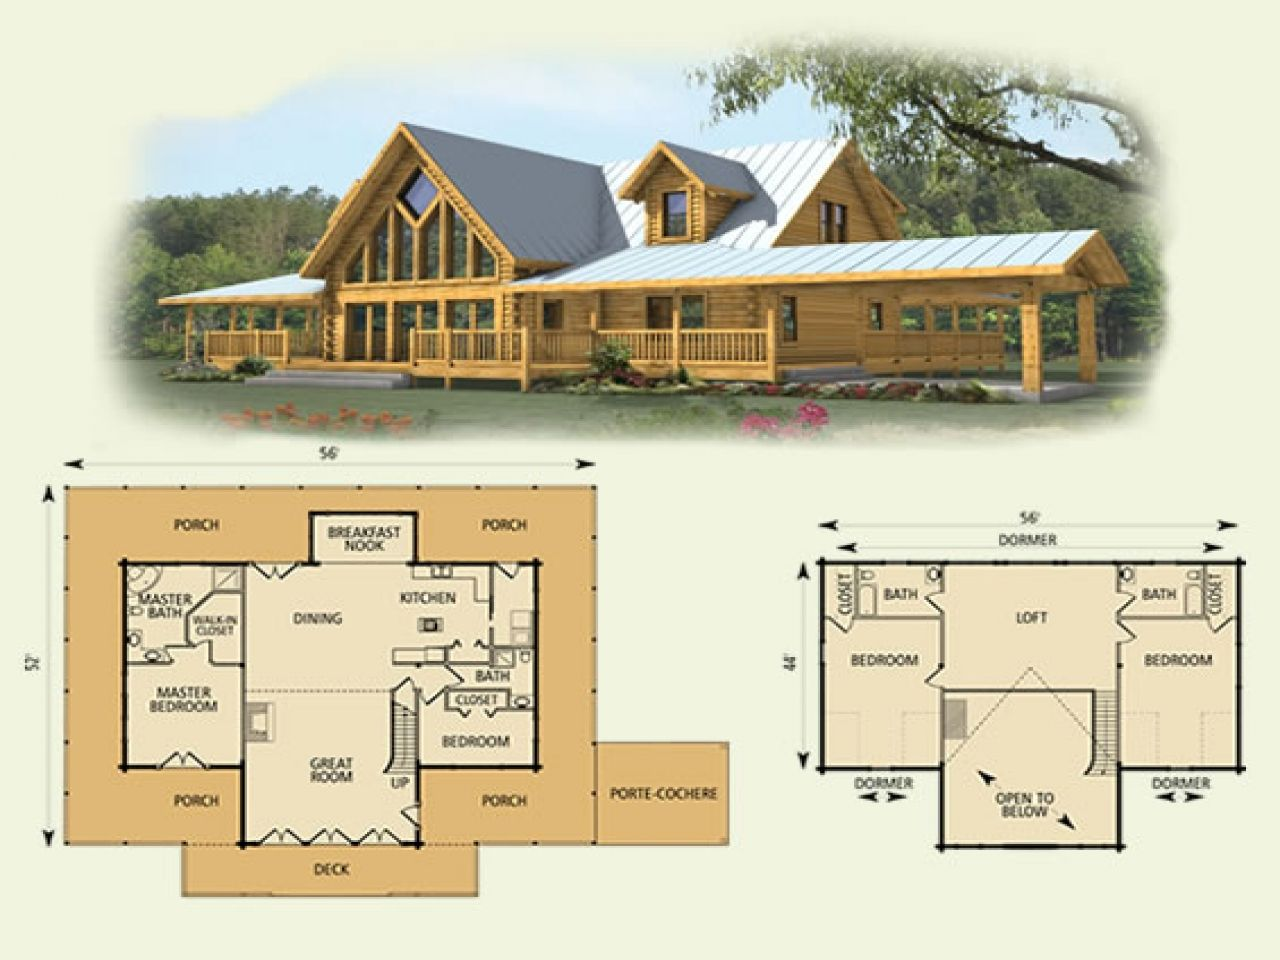 Incroyable Simple Cabin Plans With Loft Log Open Floor Plan Rustic Cool